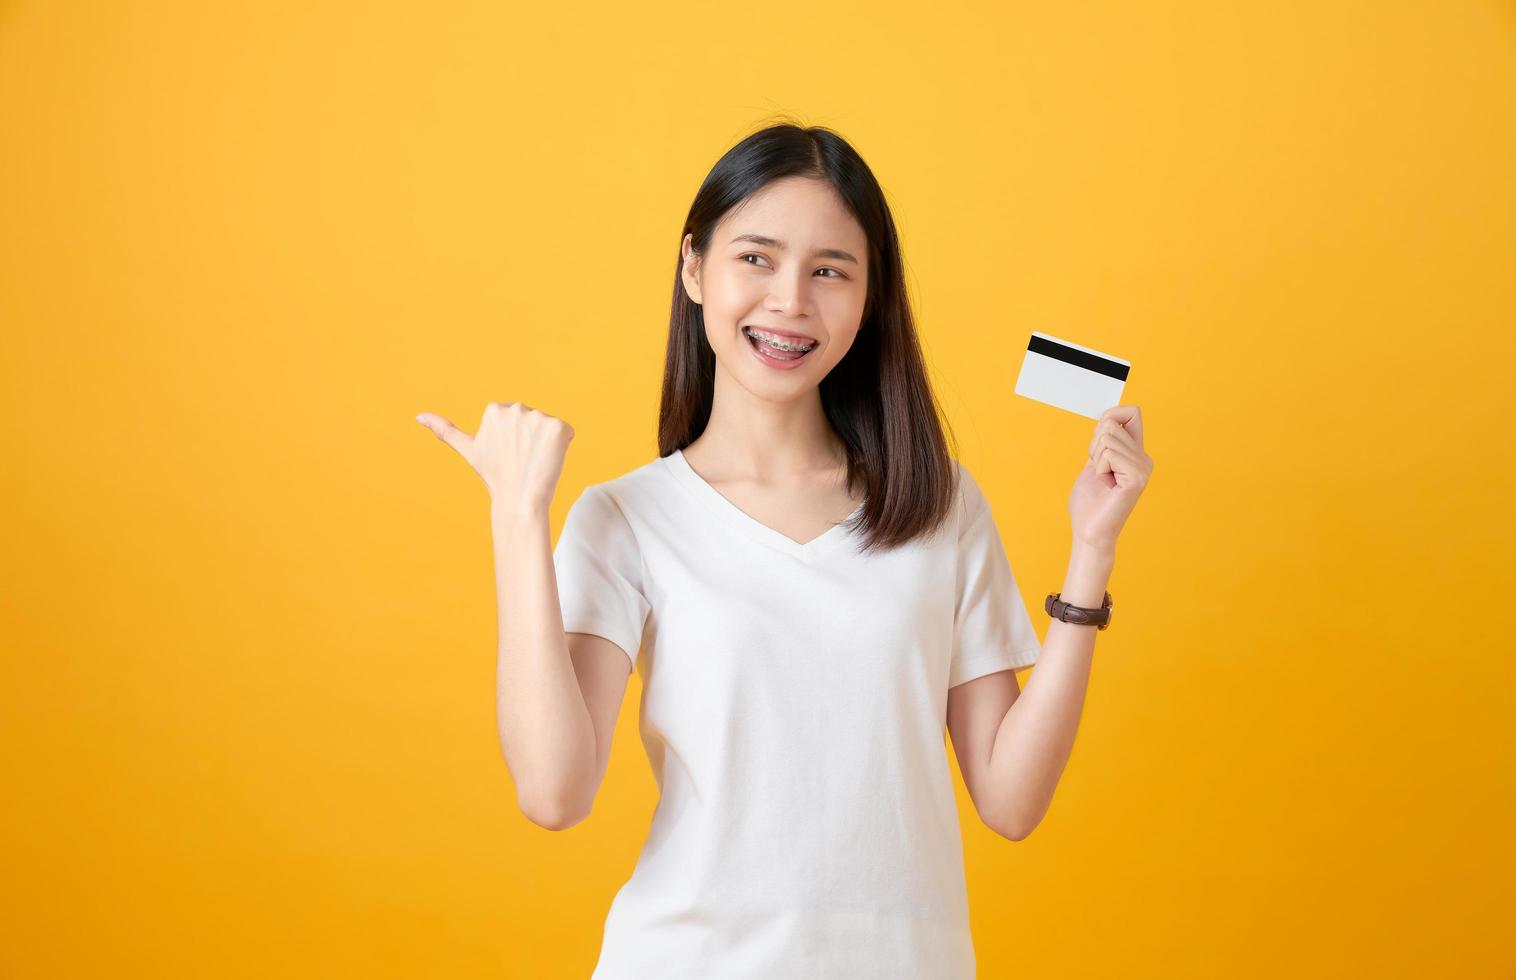 Woman holding a credit card photo